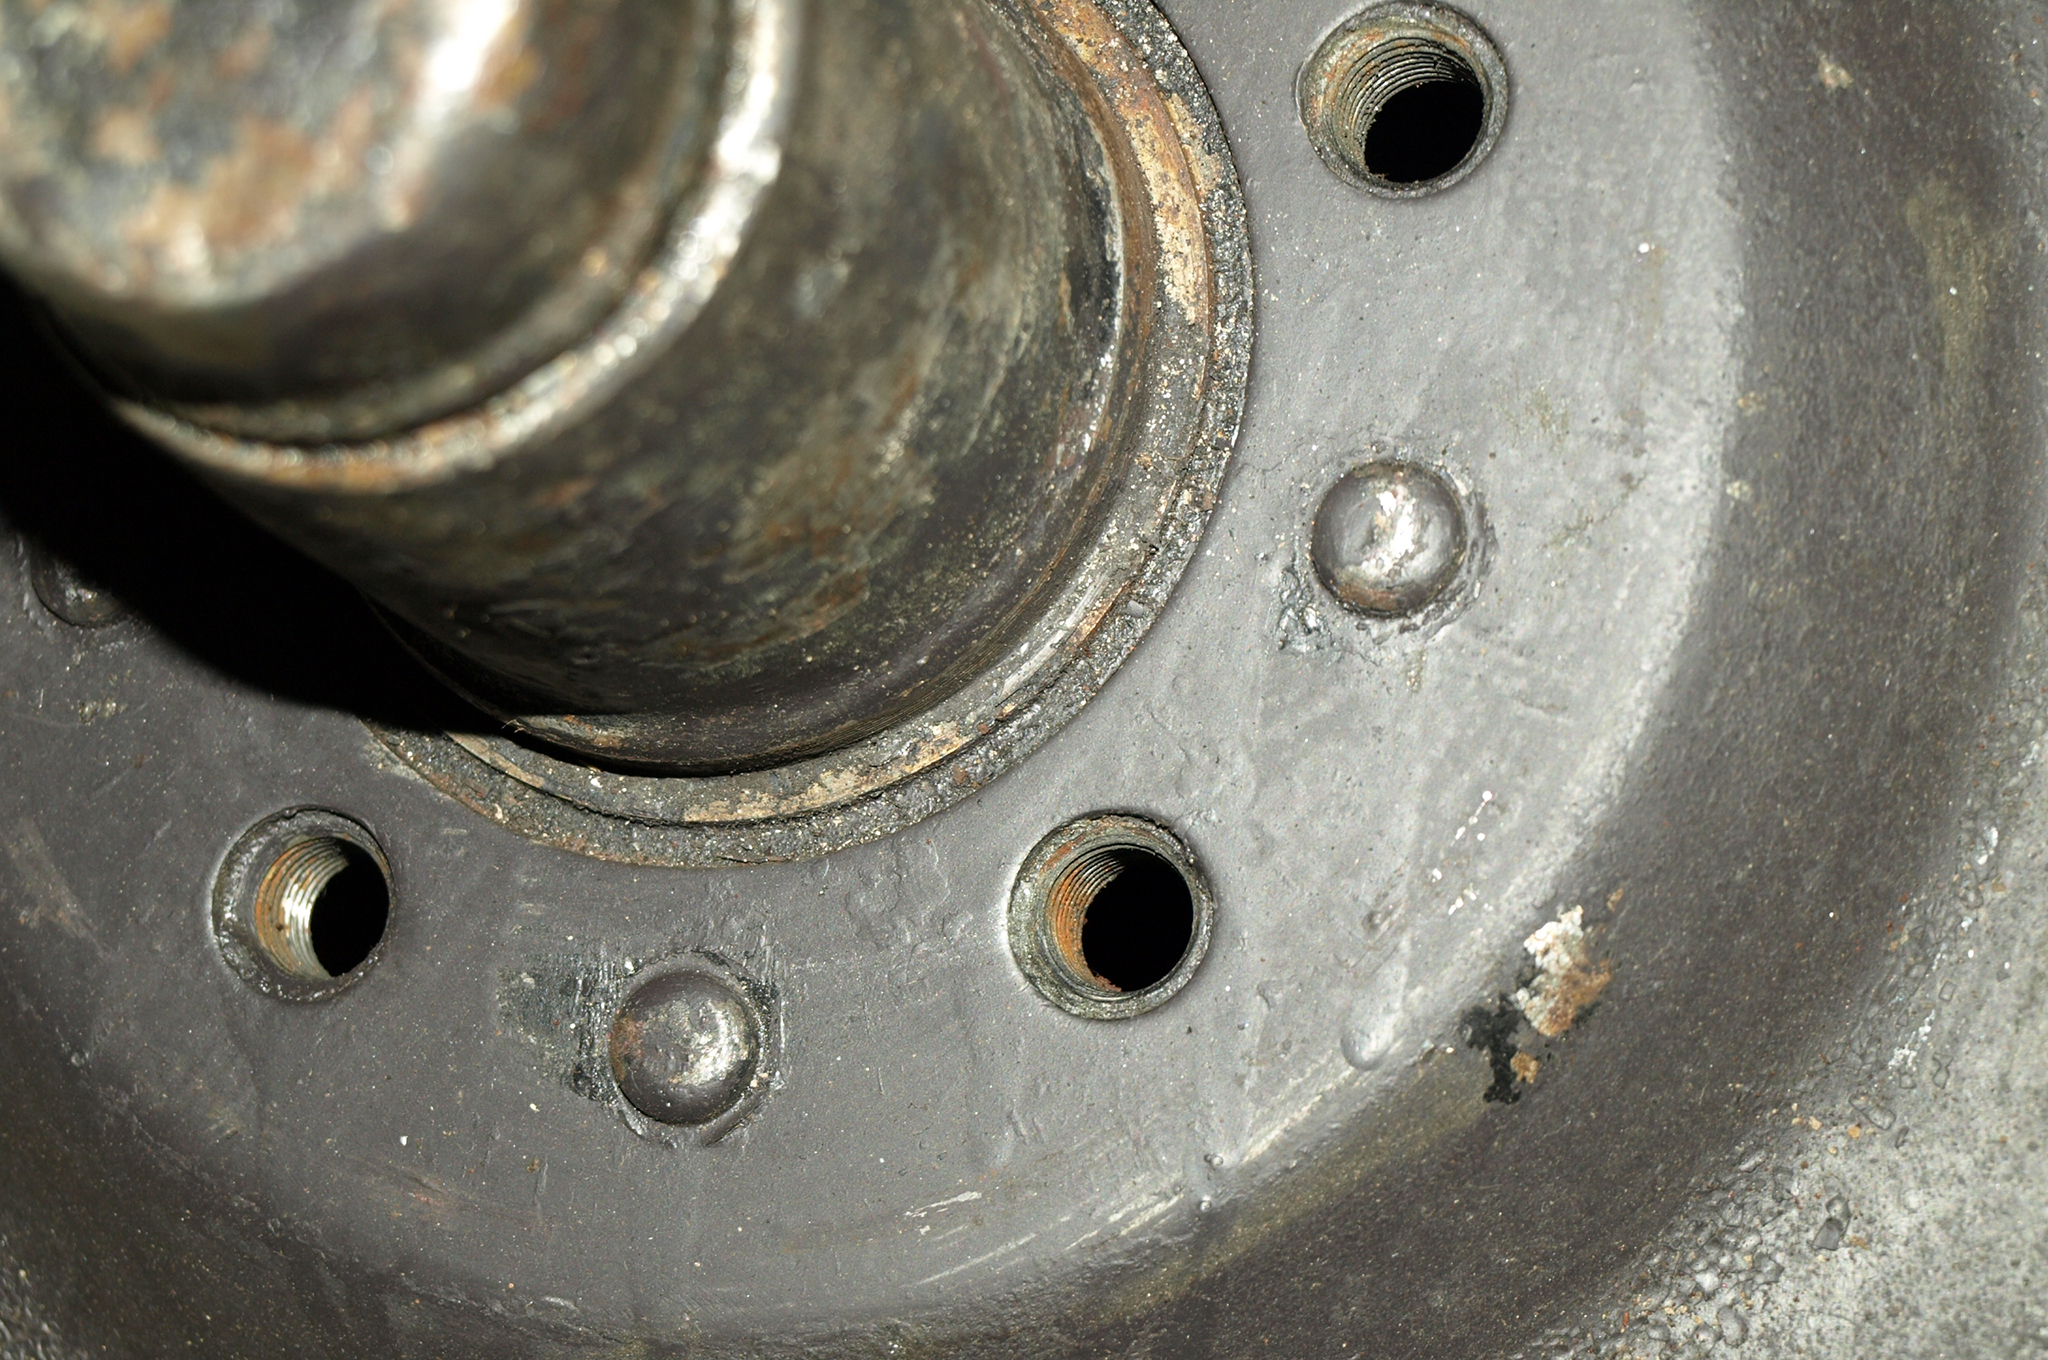 This close-up view of a 1933 Plymouth front brake drum shows the tapped wheel-bolt holes used through the end of the 1954 model year. Many modern cars use bolts too. There's no inherent disadvantage.